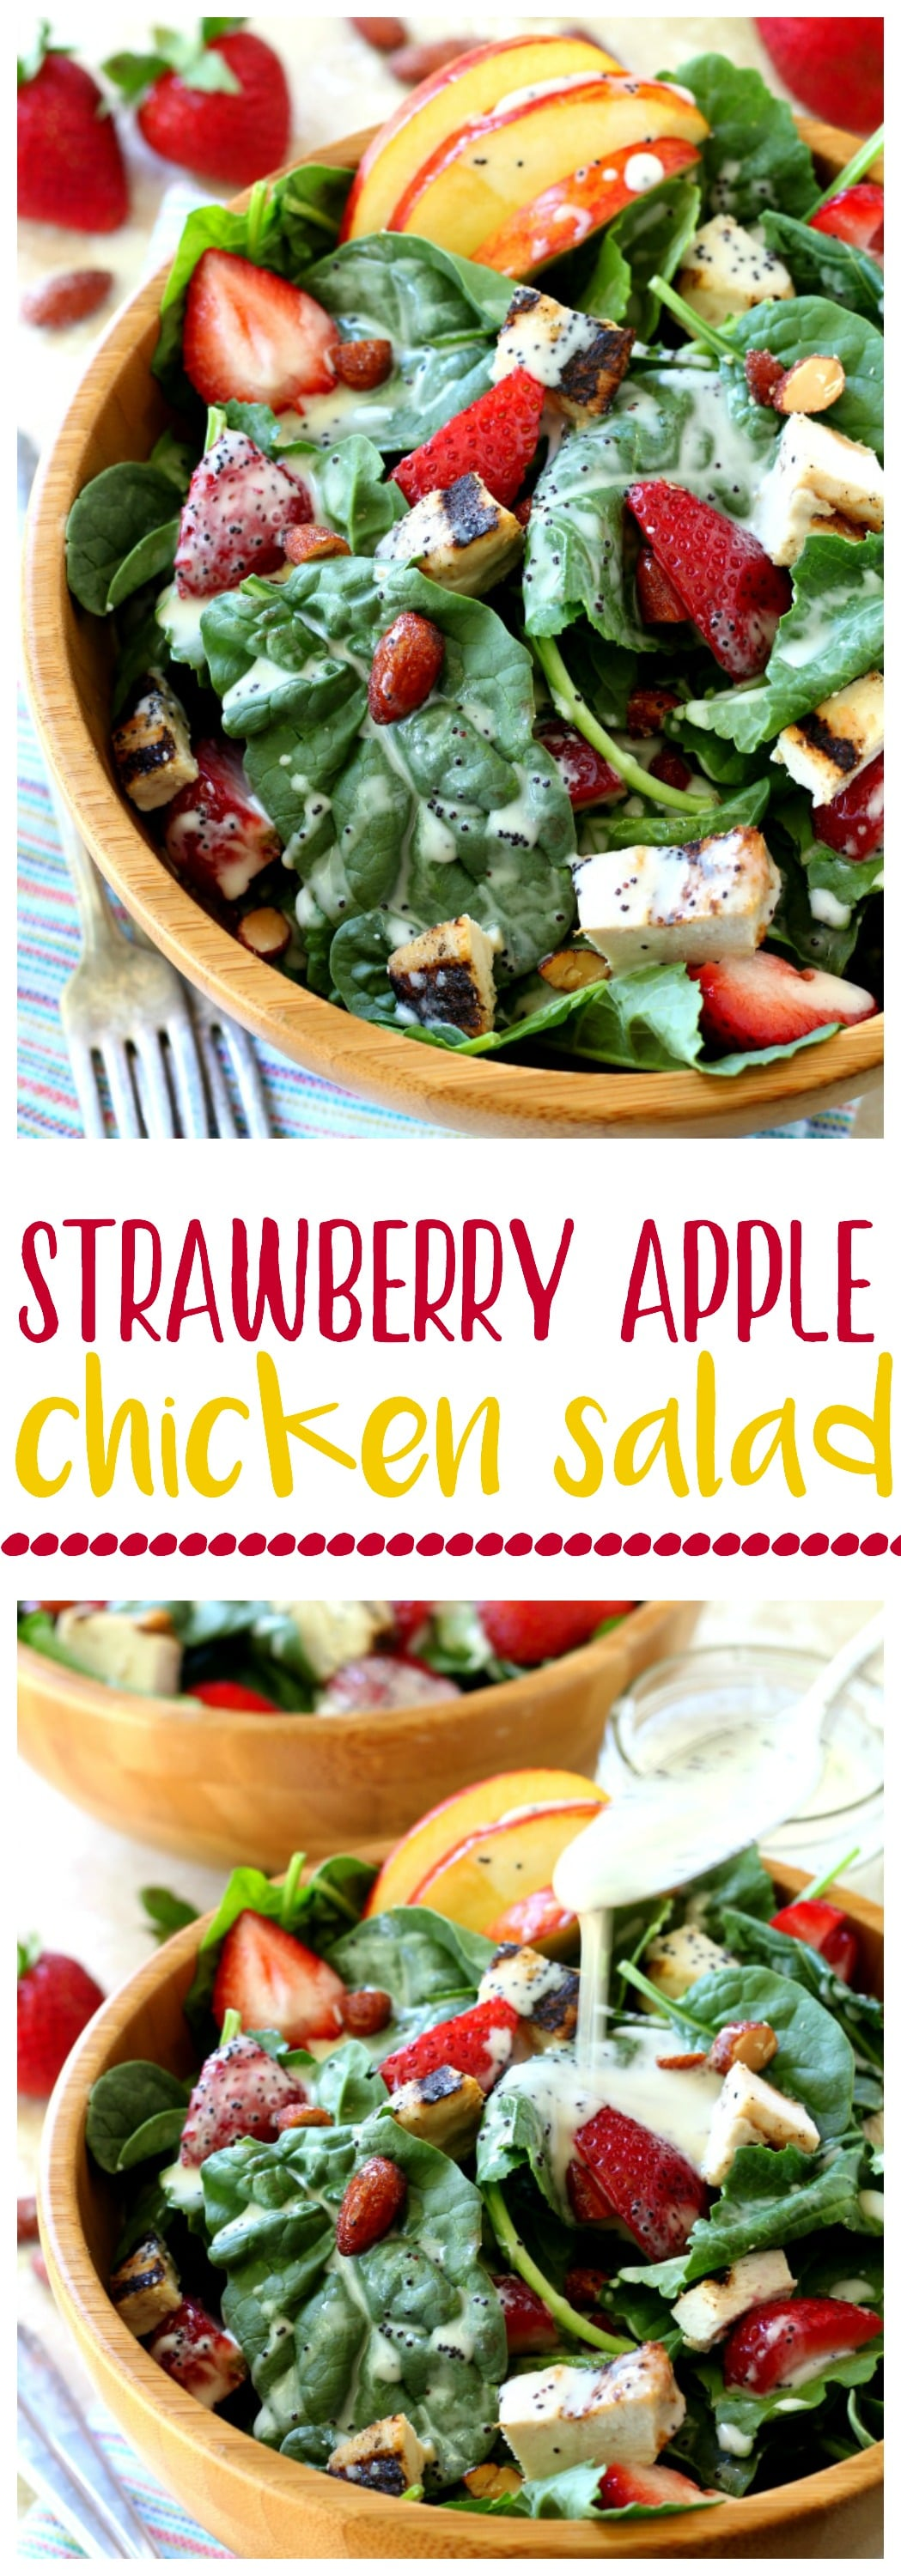 Thisquick and tasty favorite Strawberry Apple Chicken Salad is filled with plump juicy strawberries, sweet apple slices, crunchy almonds and topped off with the most wonderful poppy seed dressing you've ever tasted!